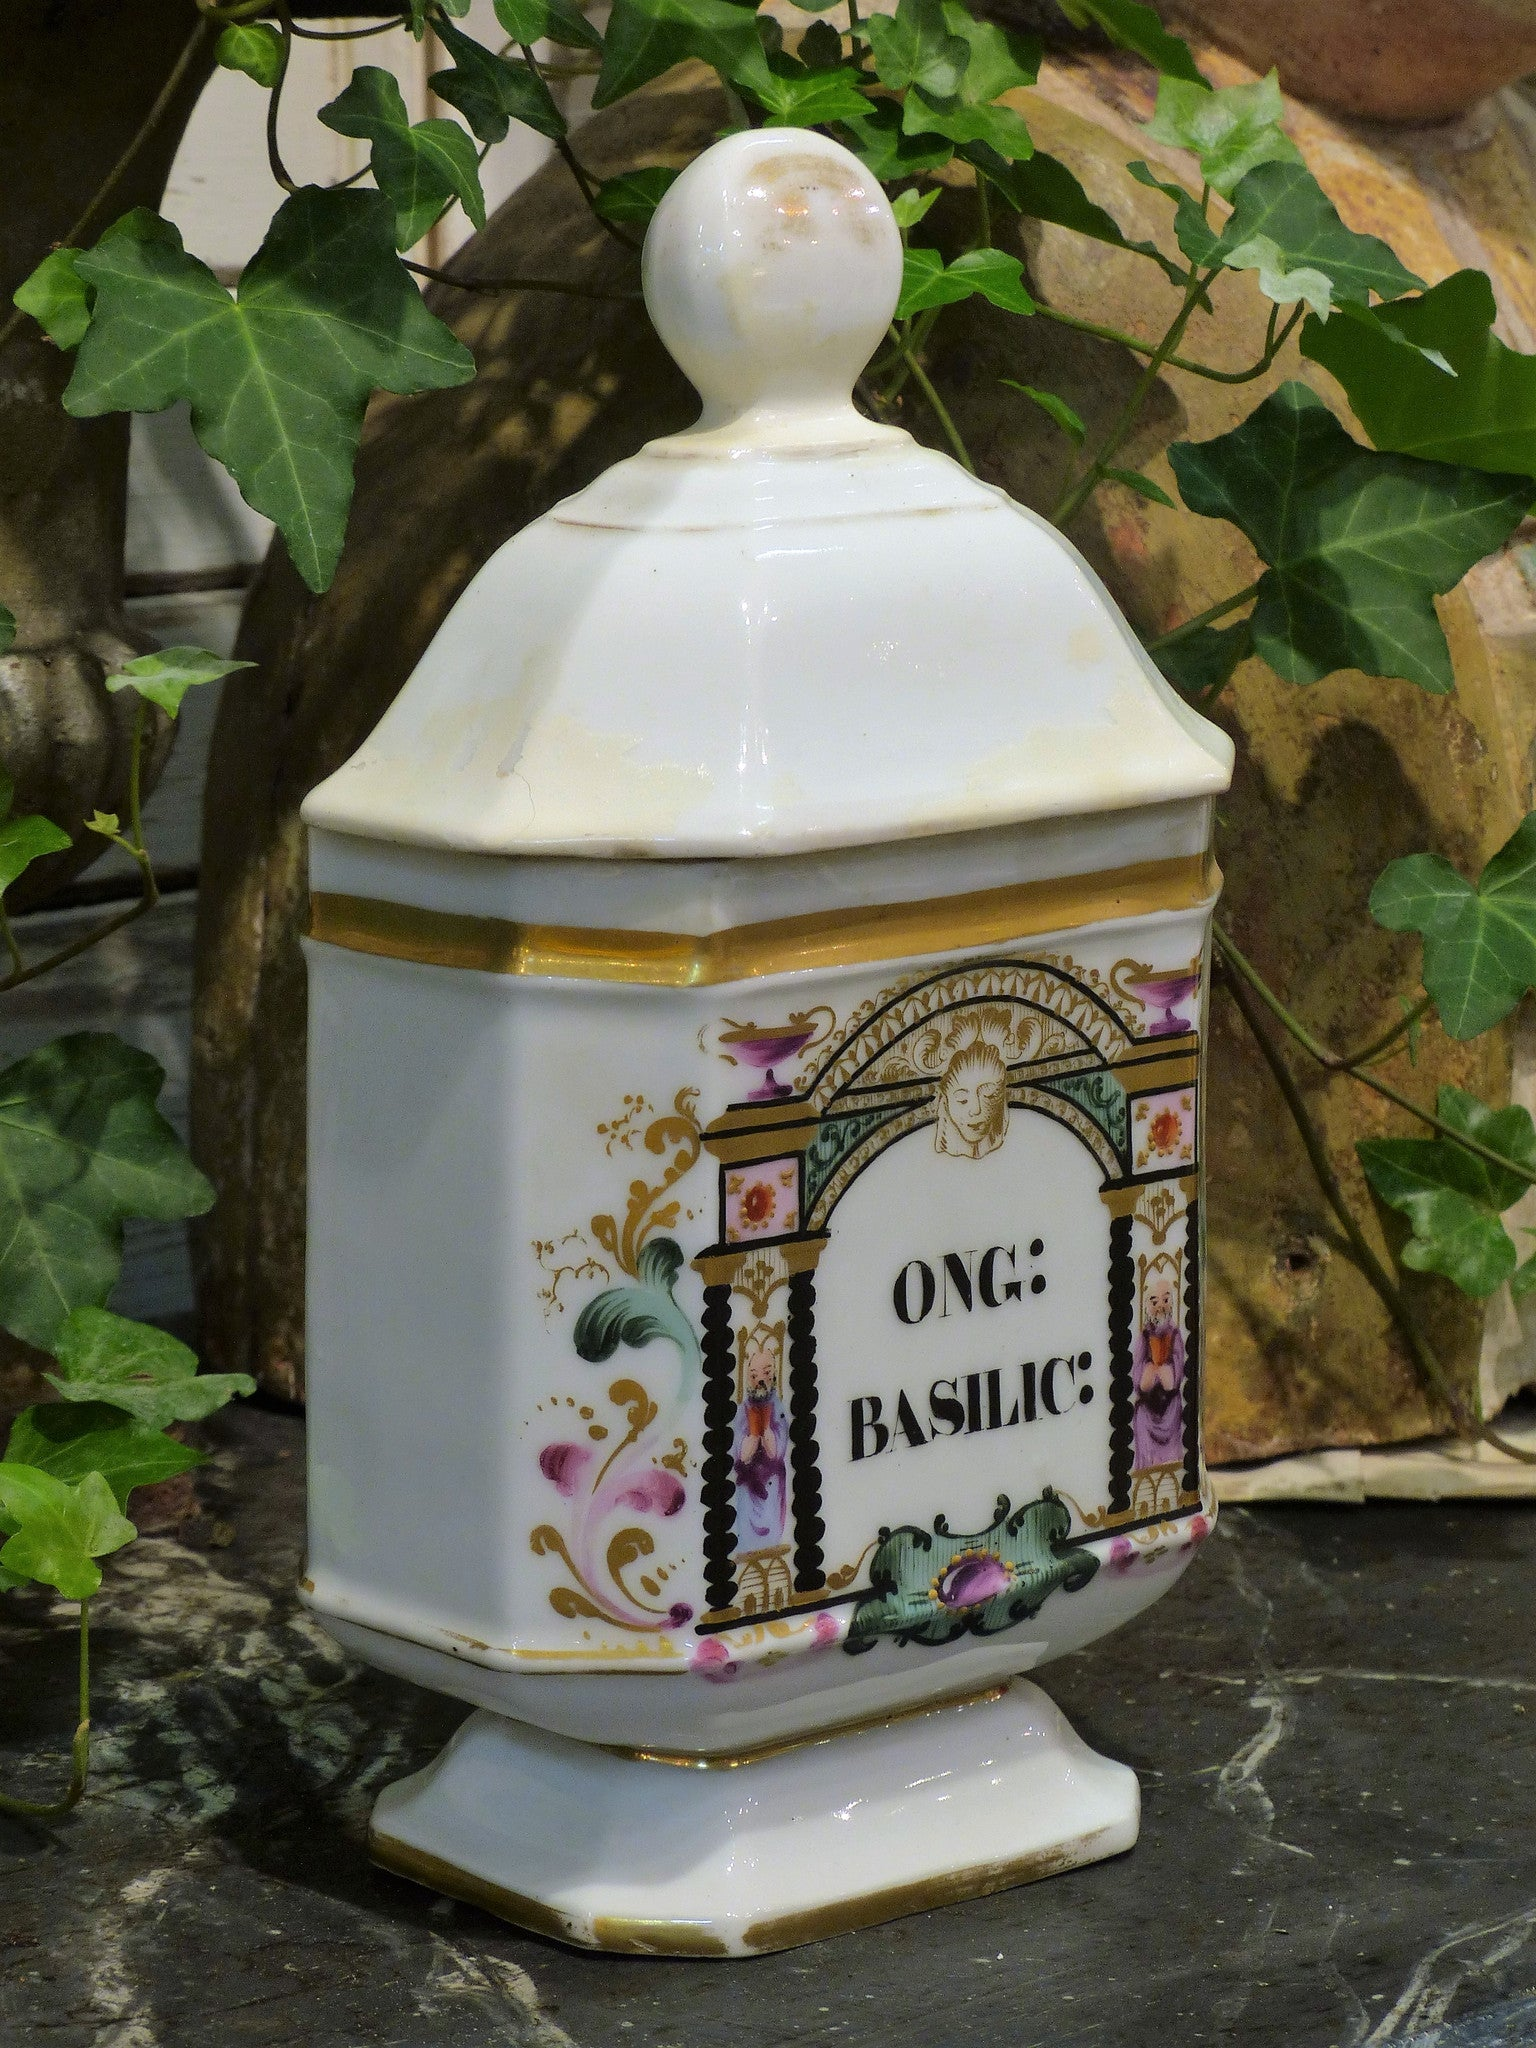 Early 19th century French apothecary jar - ONG: basilic